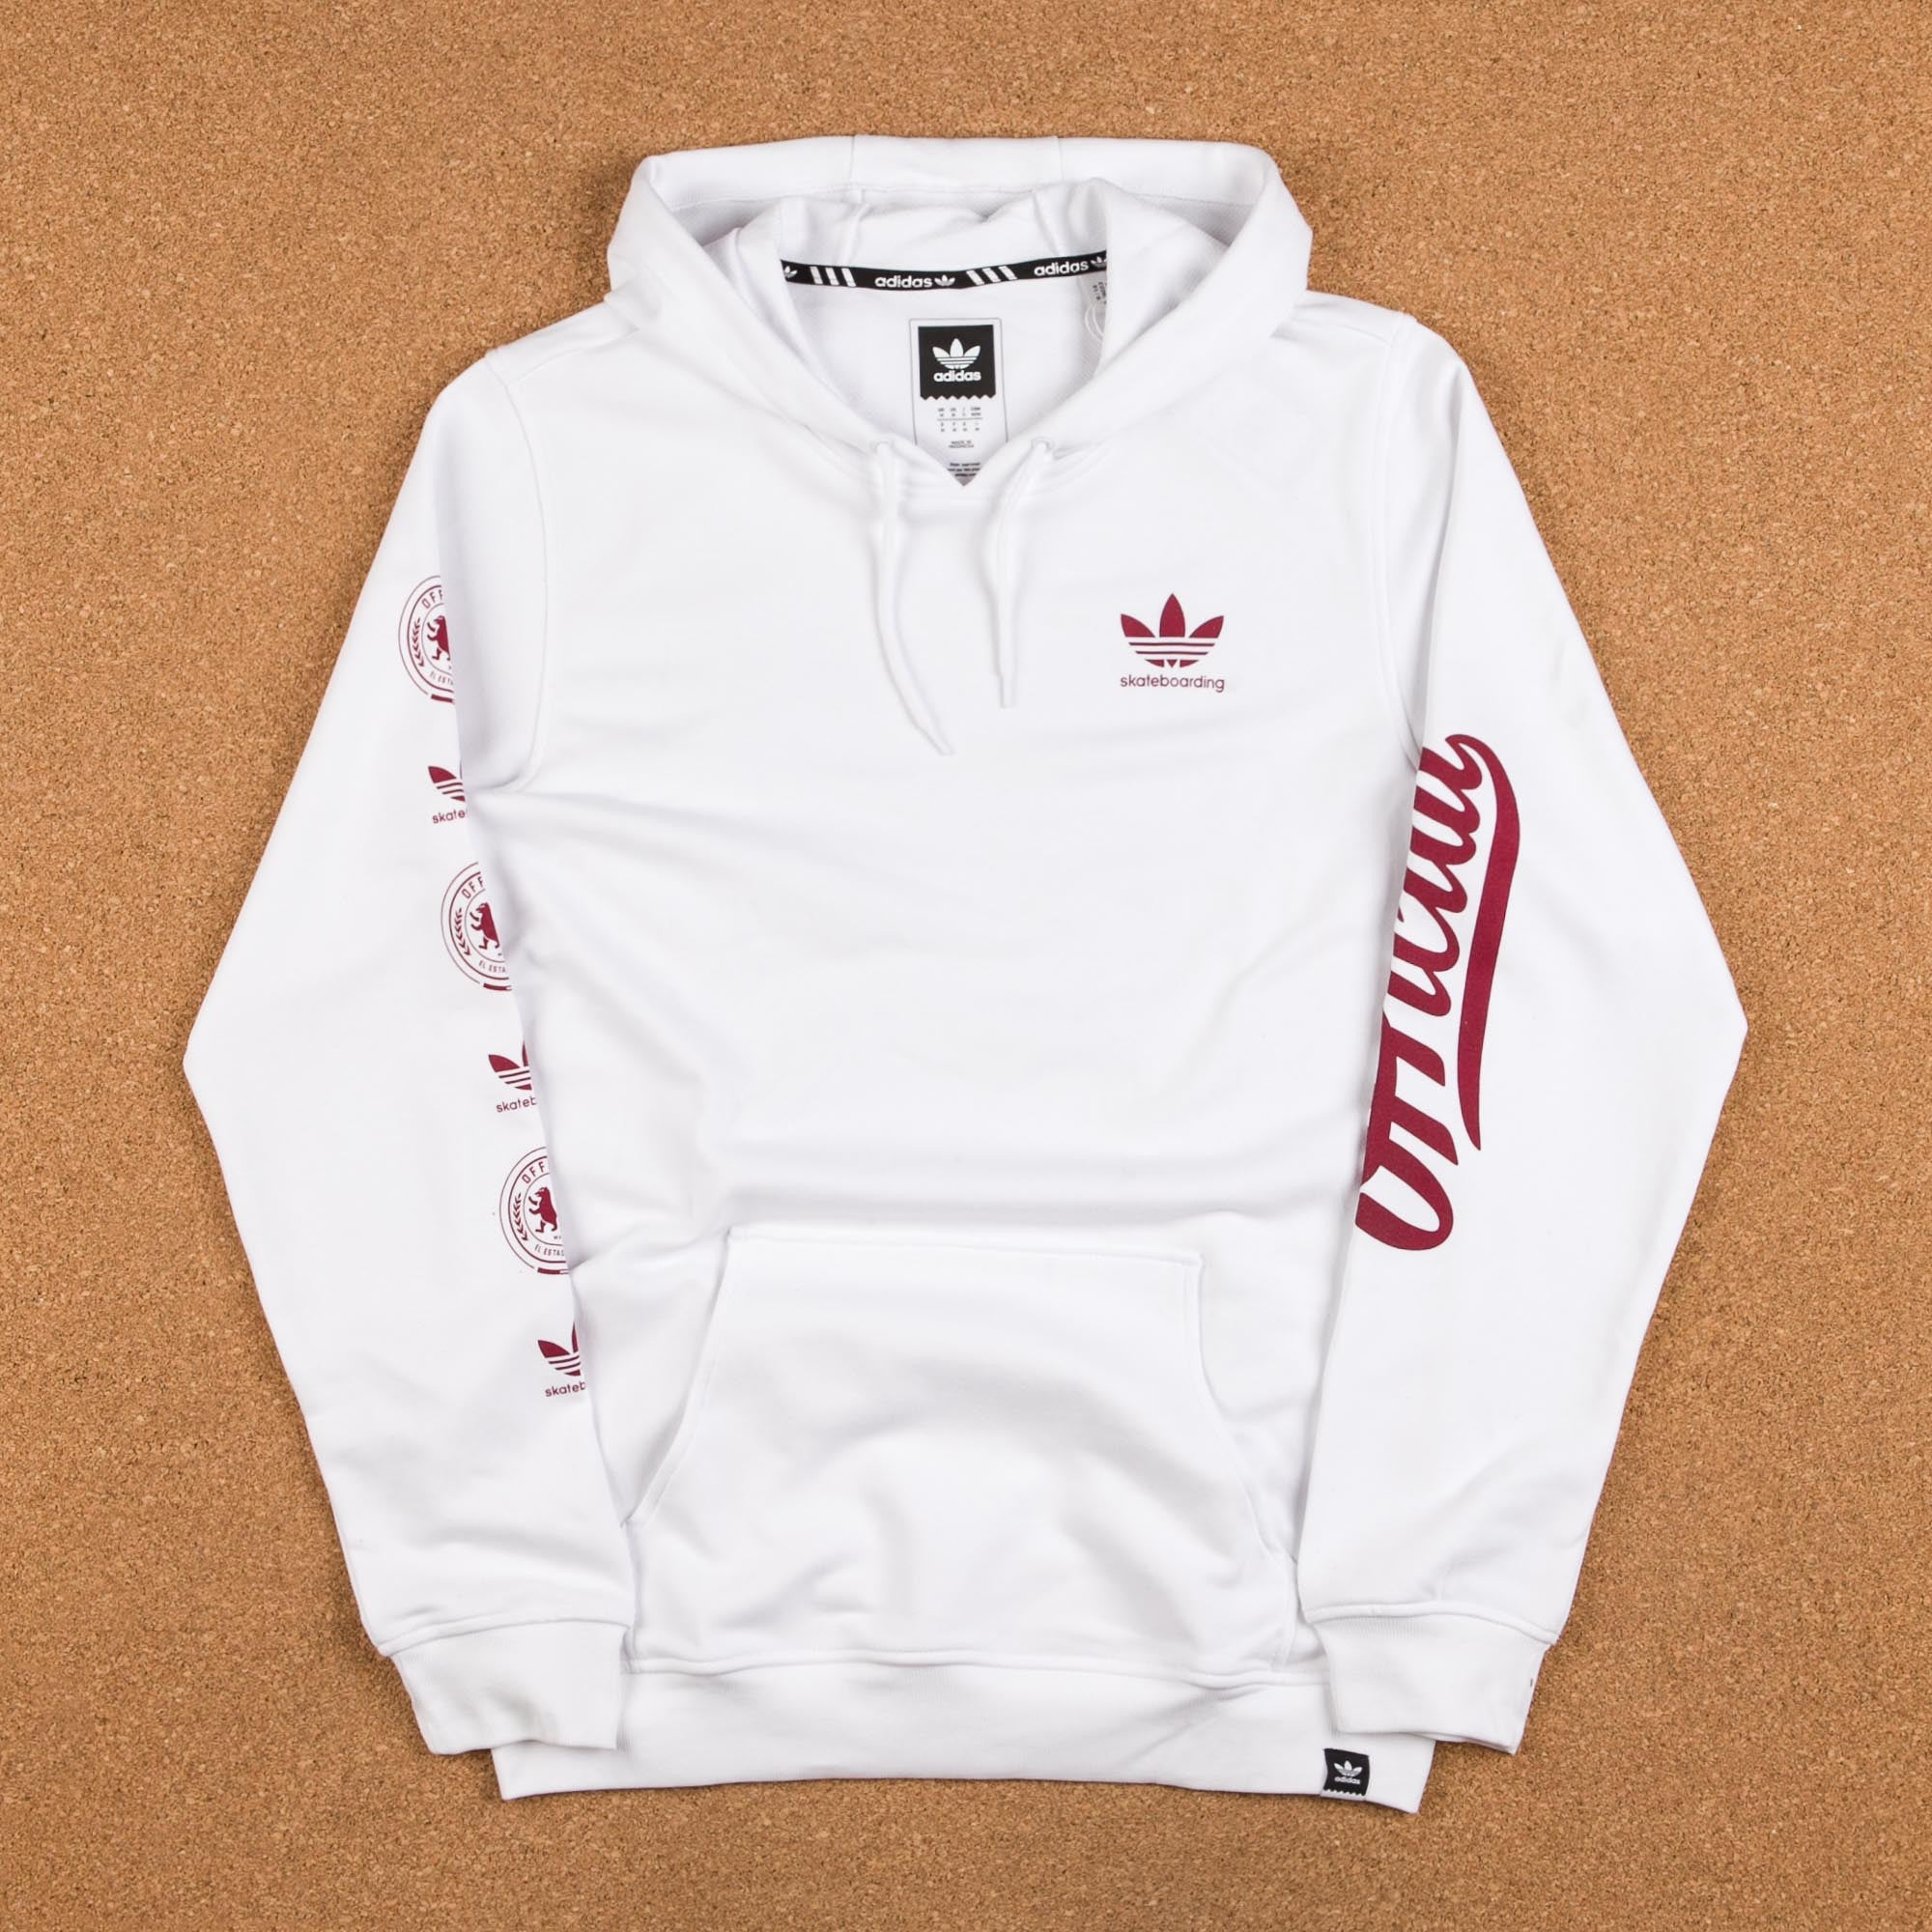 Adidas x Official Hooded Sweatshirt - White